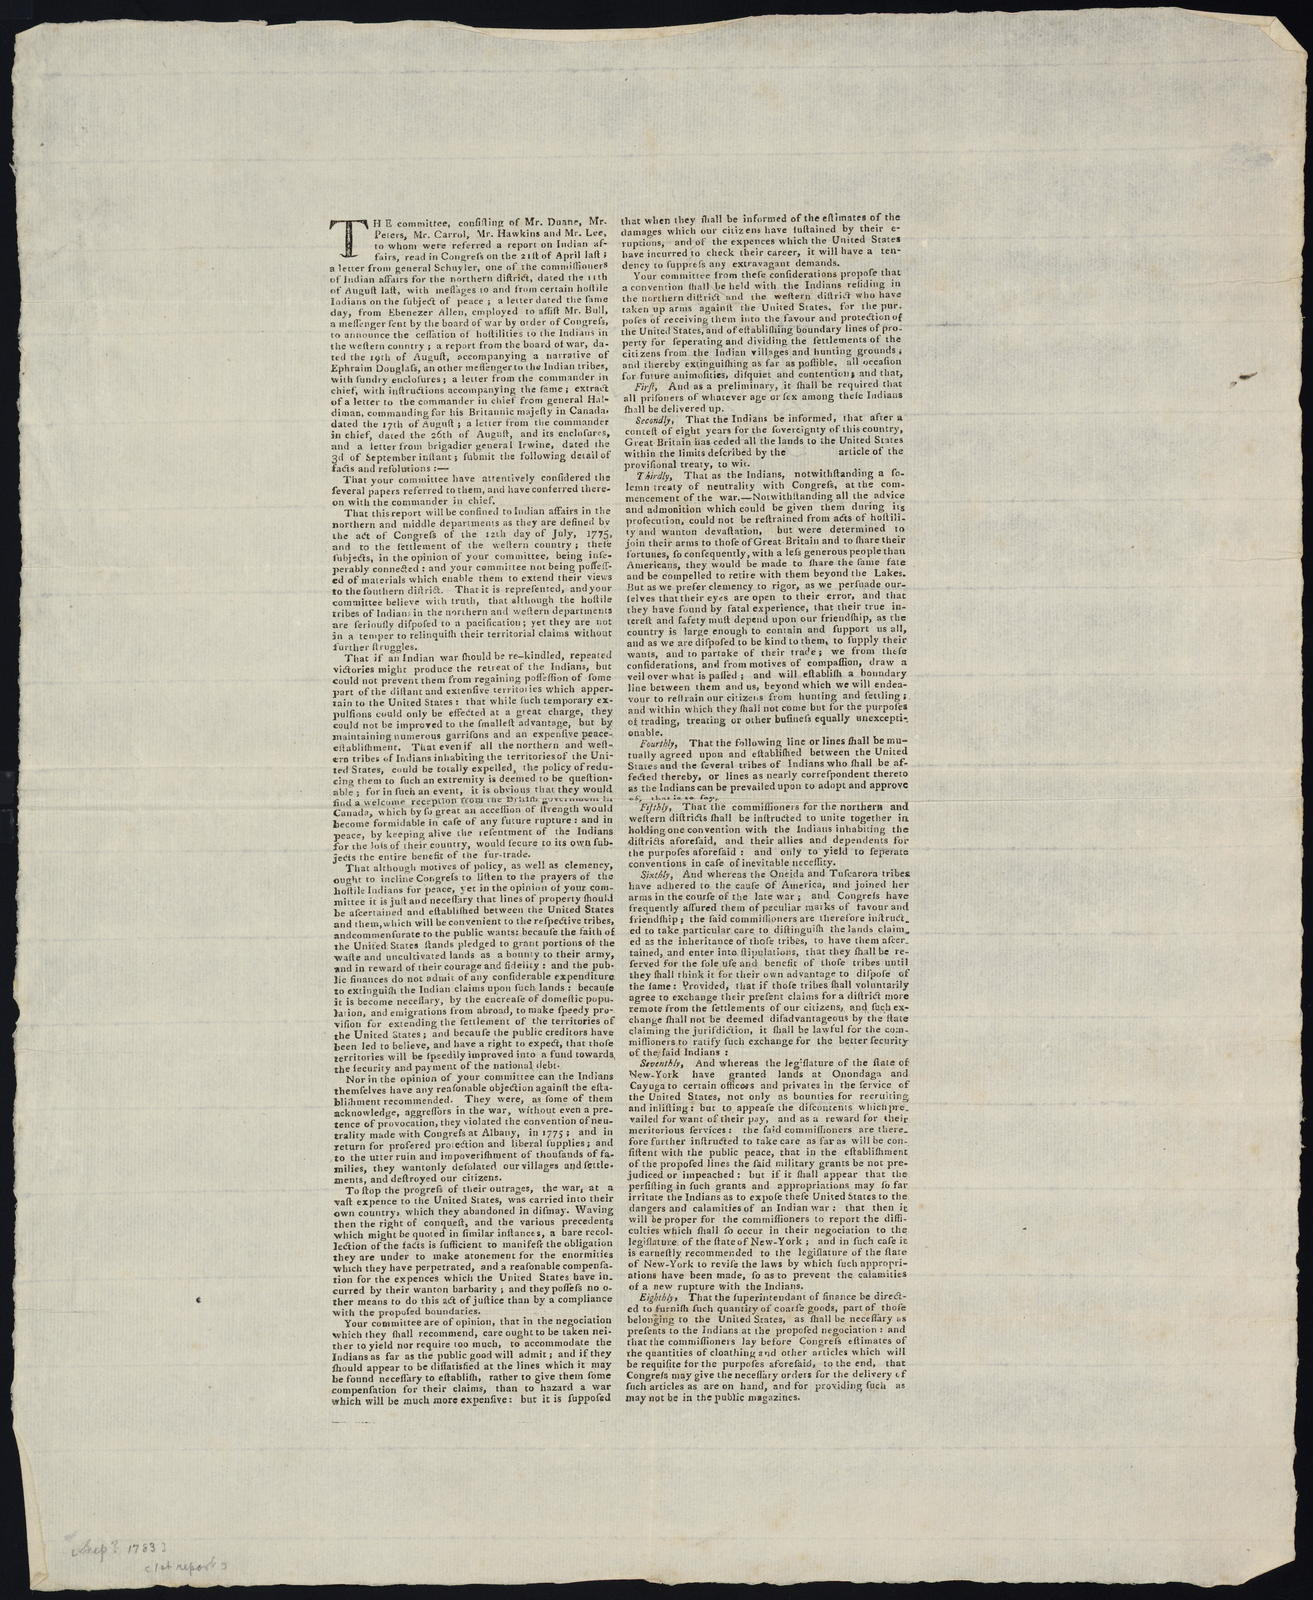 The committee, consisting of Mr. Duane, Mr. Peters, Mr. Carrol [i.e. Carroll], Mr. Hawkins and Mr. Lee, to whom were referred a report on Indian affairs, read in Congress on the 21st of April last, a letter from General Schuyler ... with messages to and from certain hostile Indians on the subject of peace ... submit the following detail of facts and resolutions ...